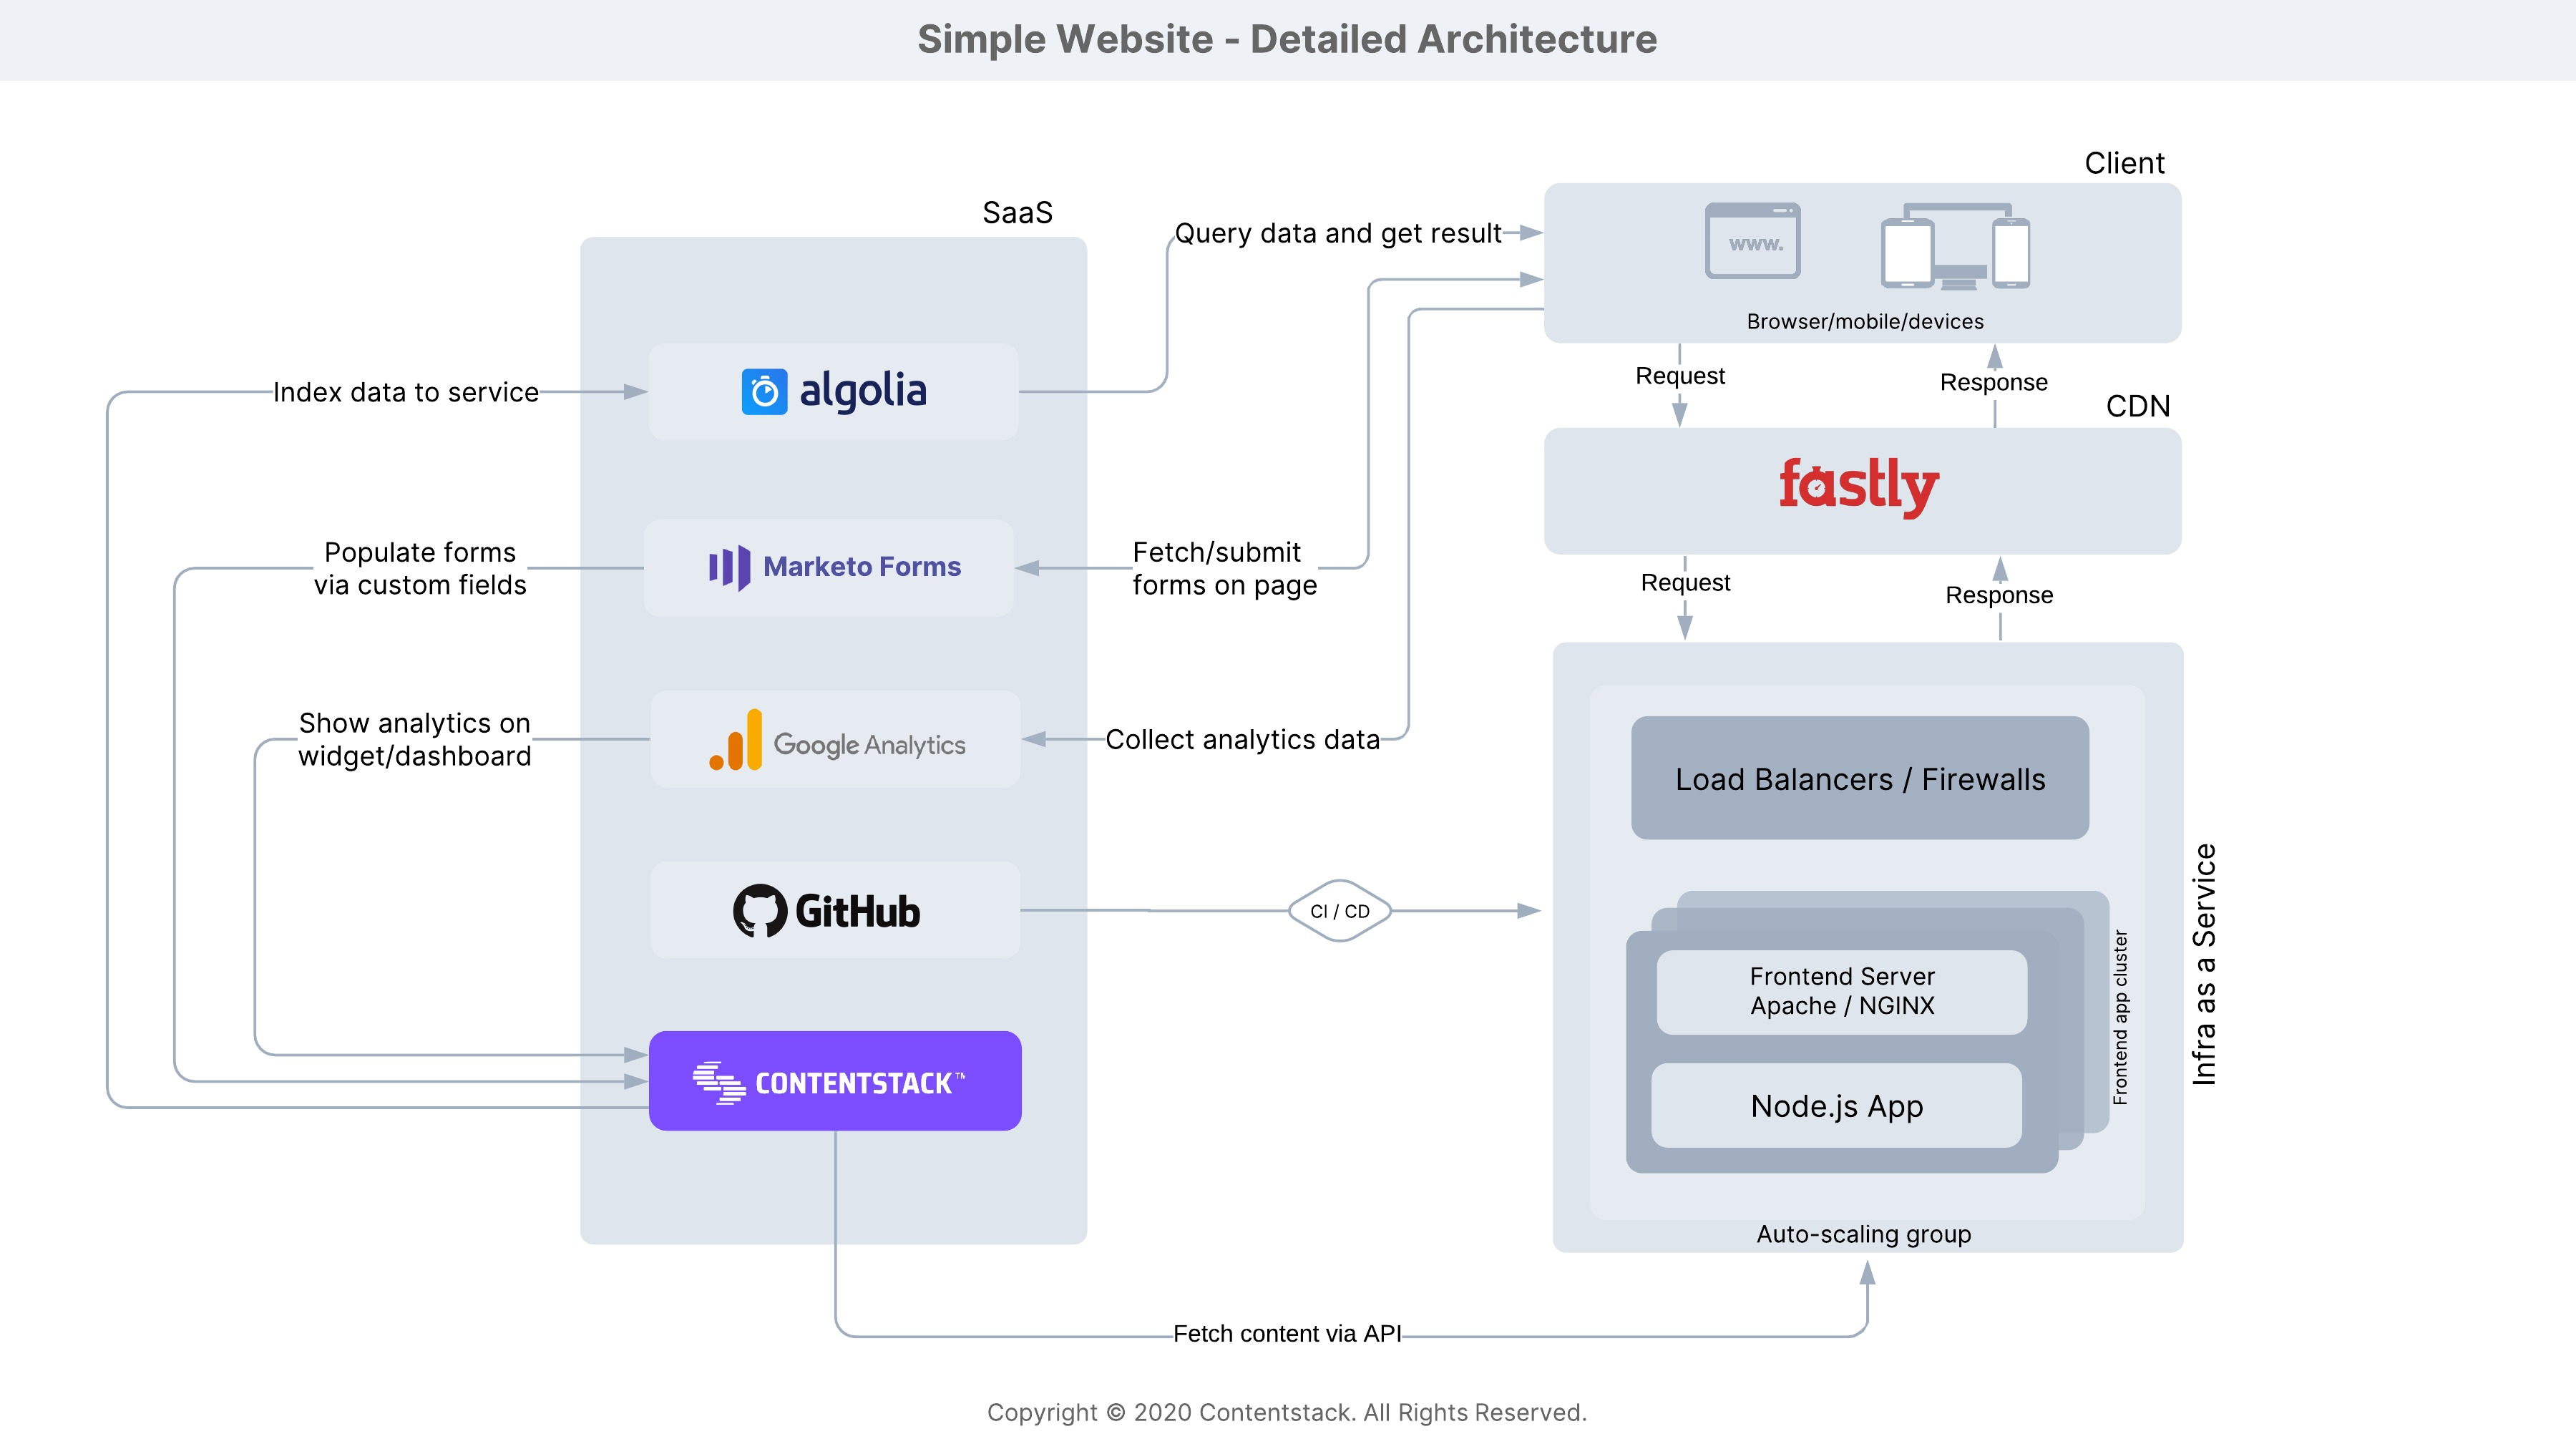 Simple_Website_Detailed_Architecture.jpeg